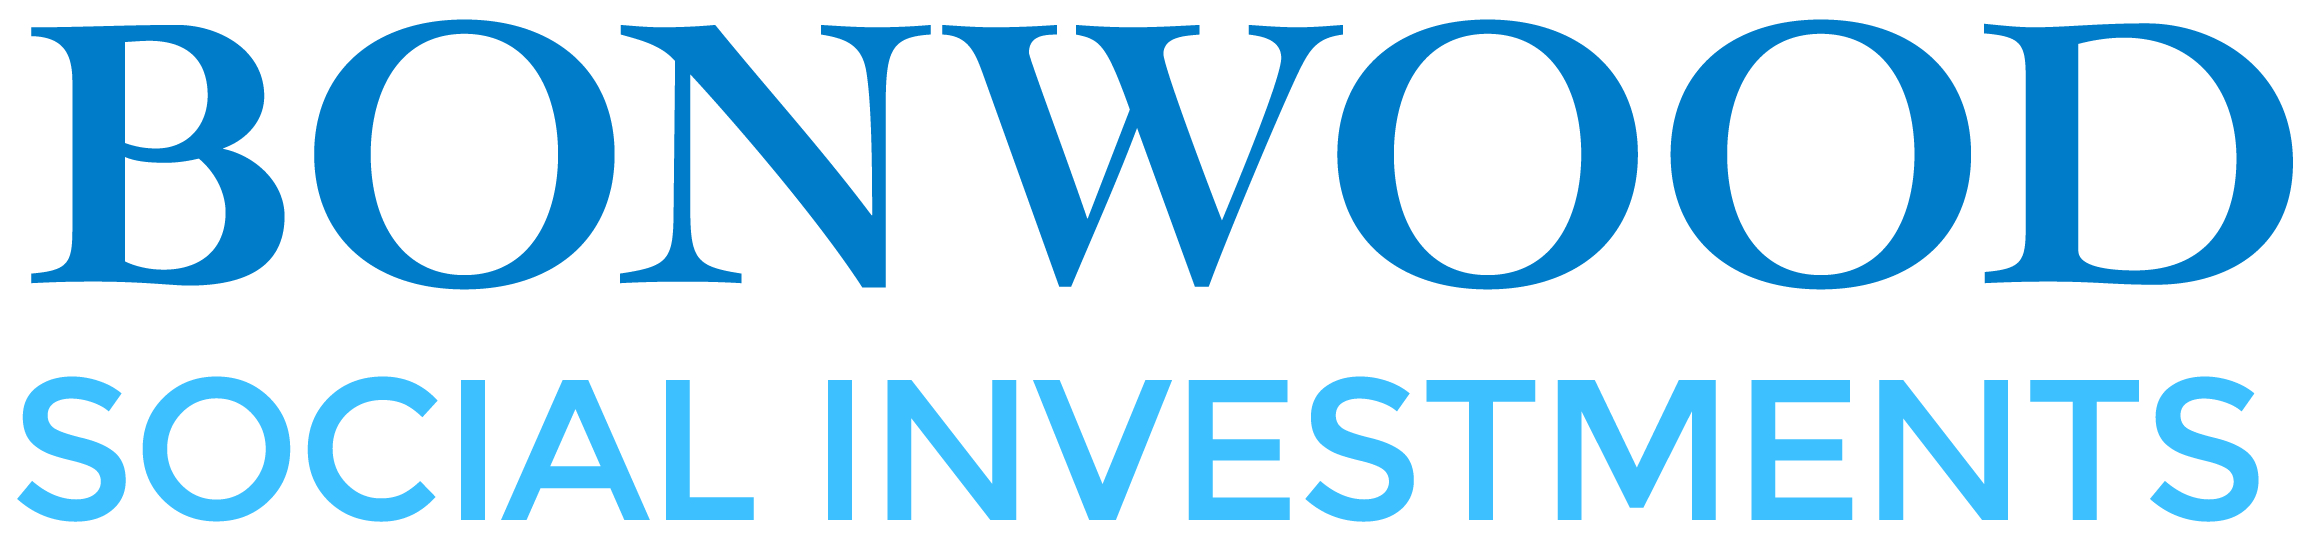 bonwood_social_investments_logotype.jpg